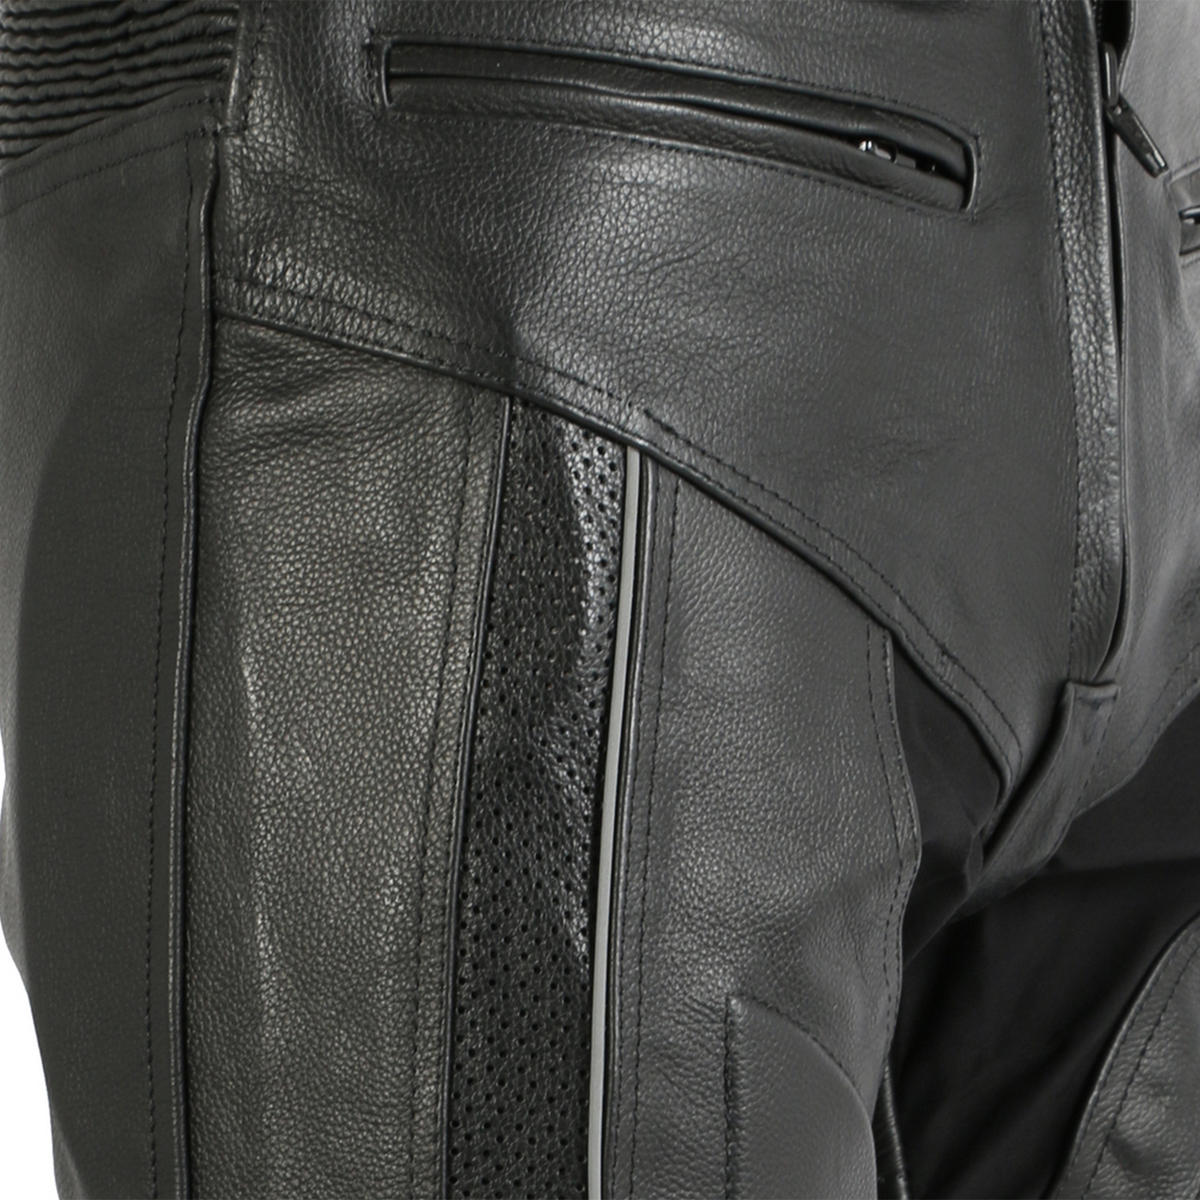 1e43cbcec8cb86 Turin Mens Leather Trousers With Metal Sliders. 16% Off